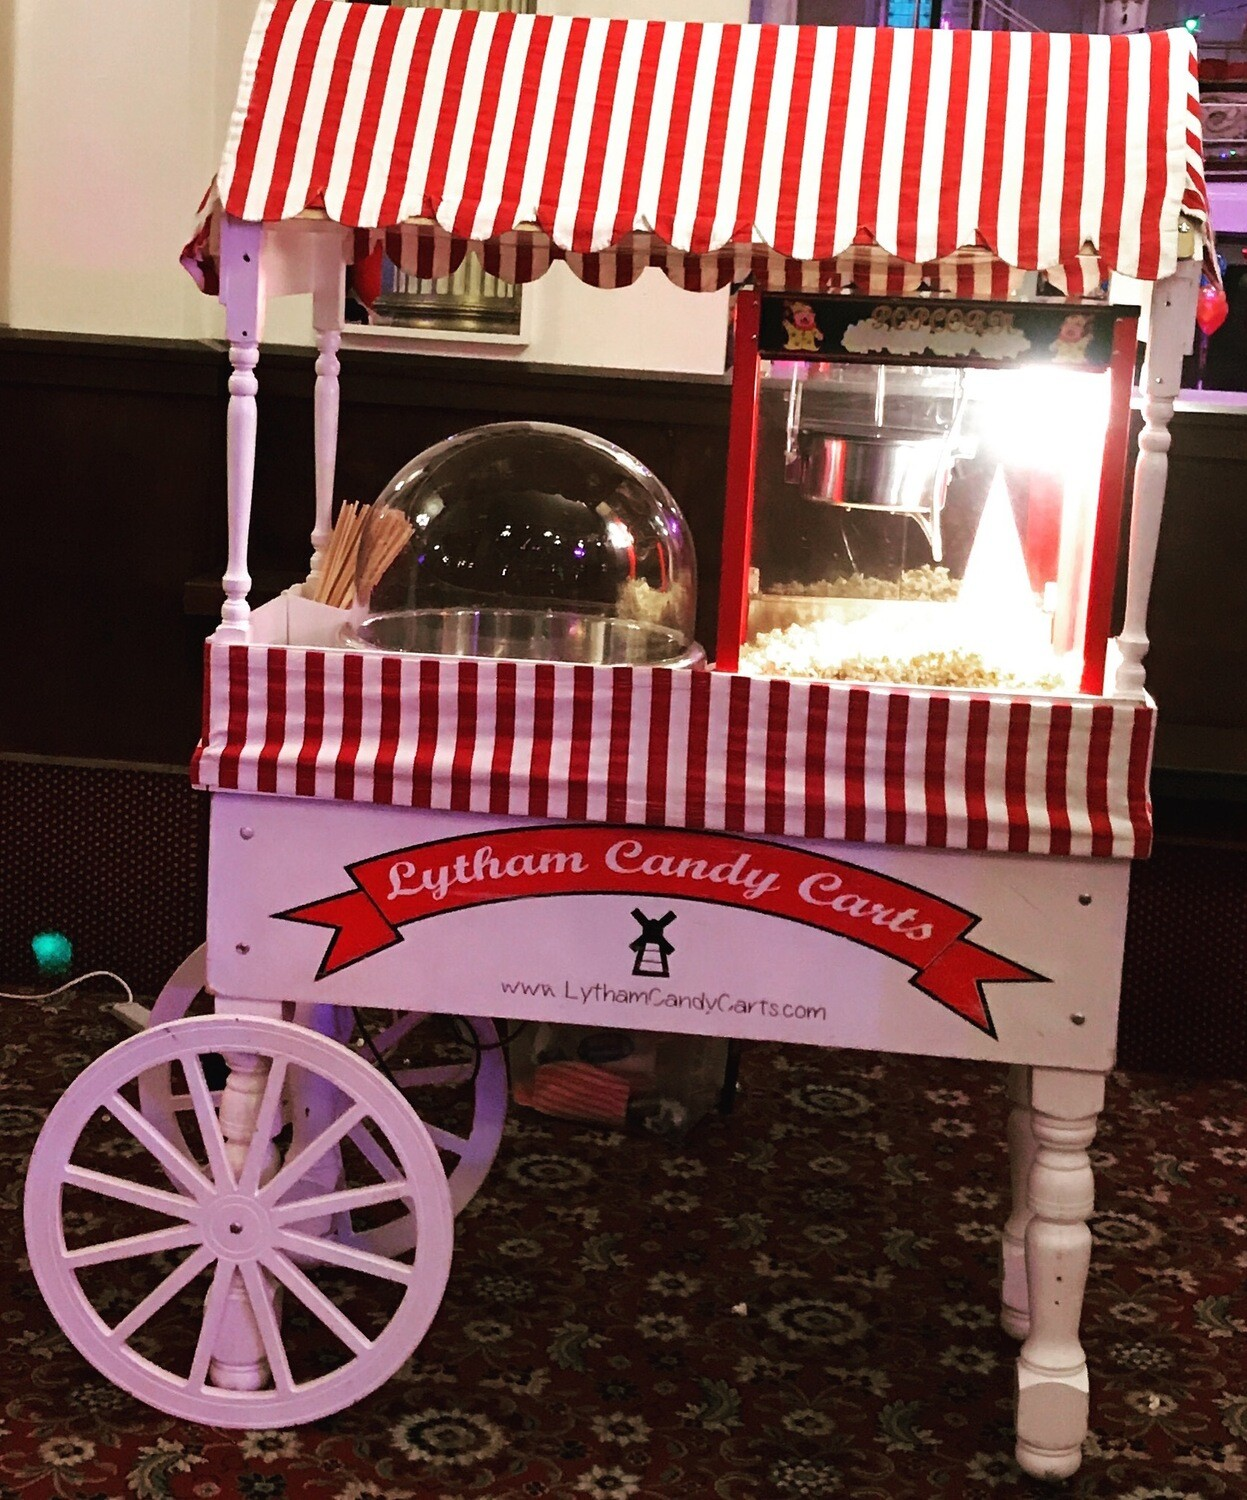 Popcorn & Candy Floss cart